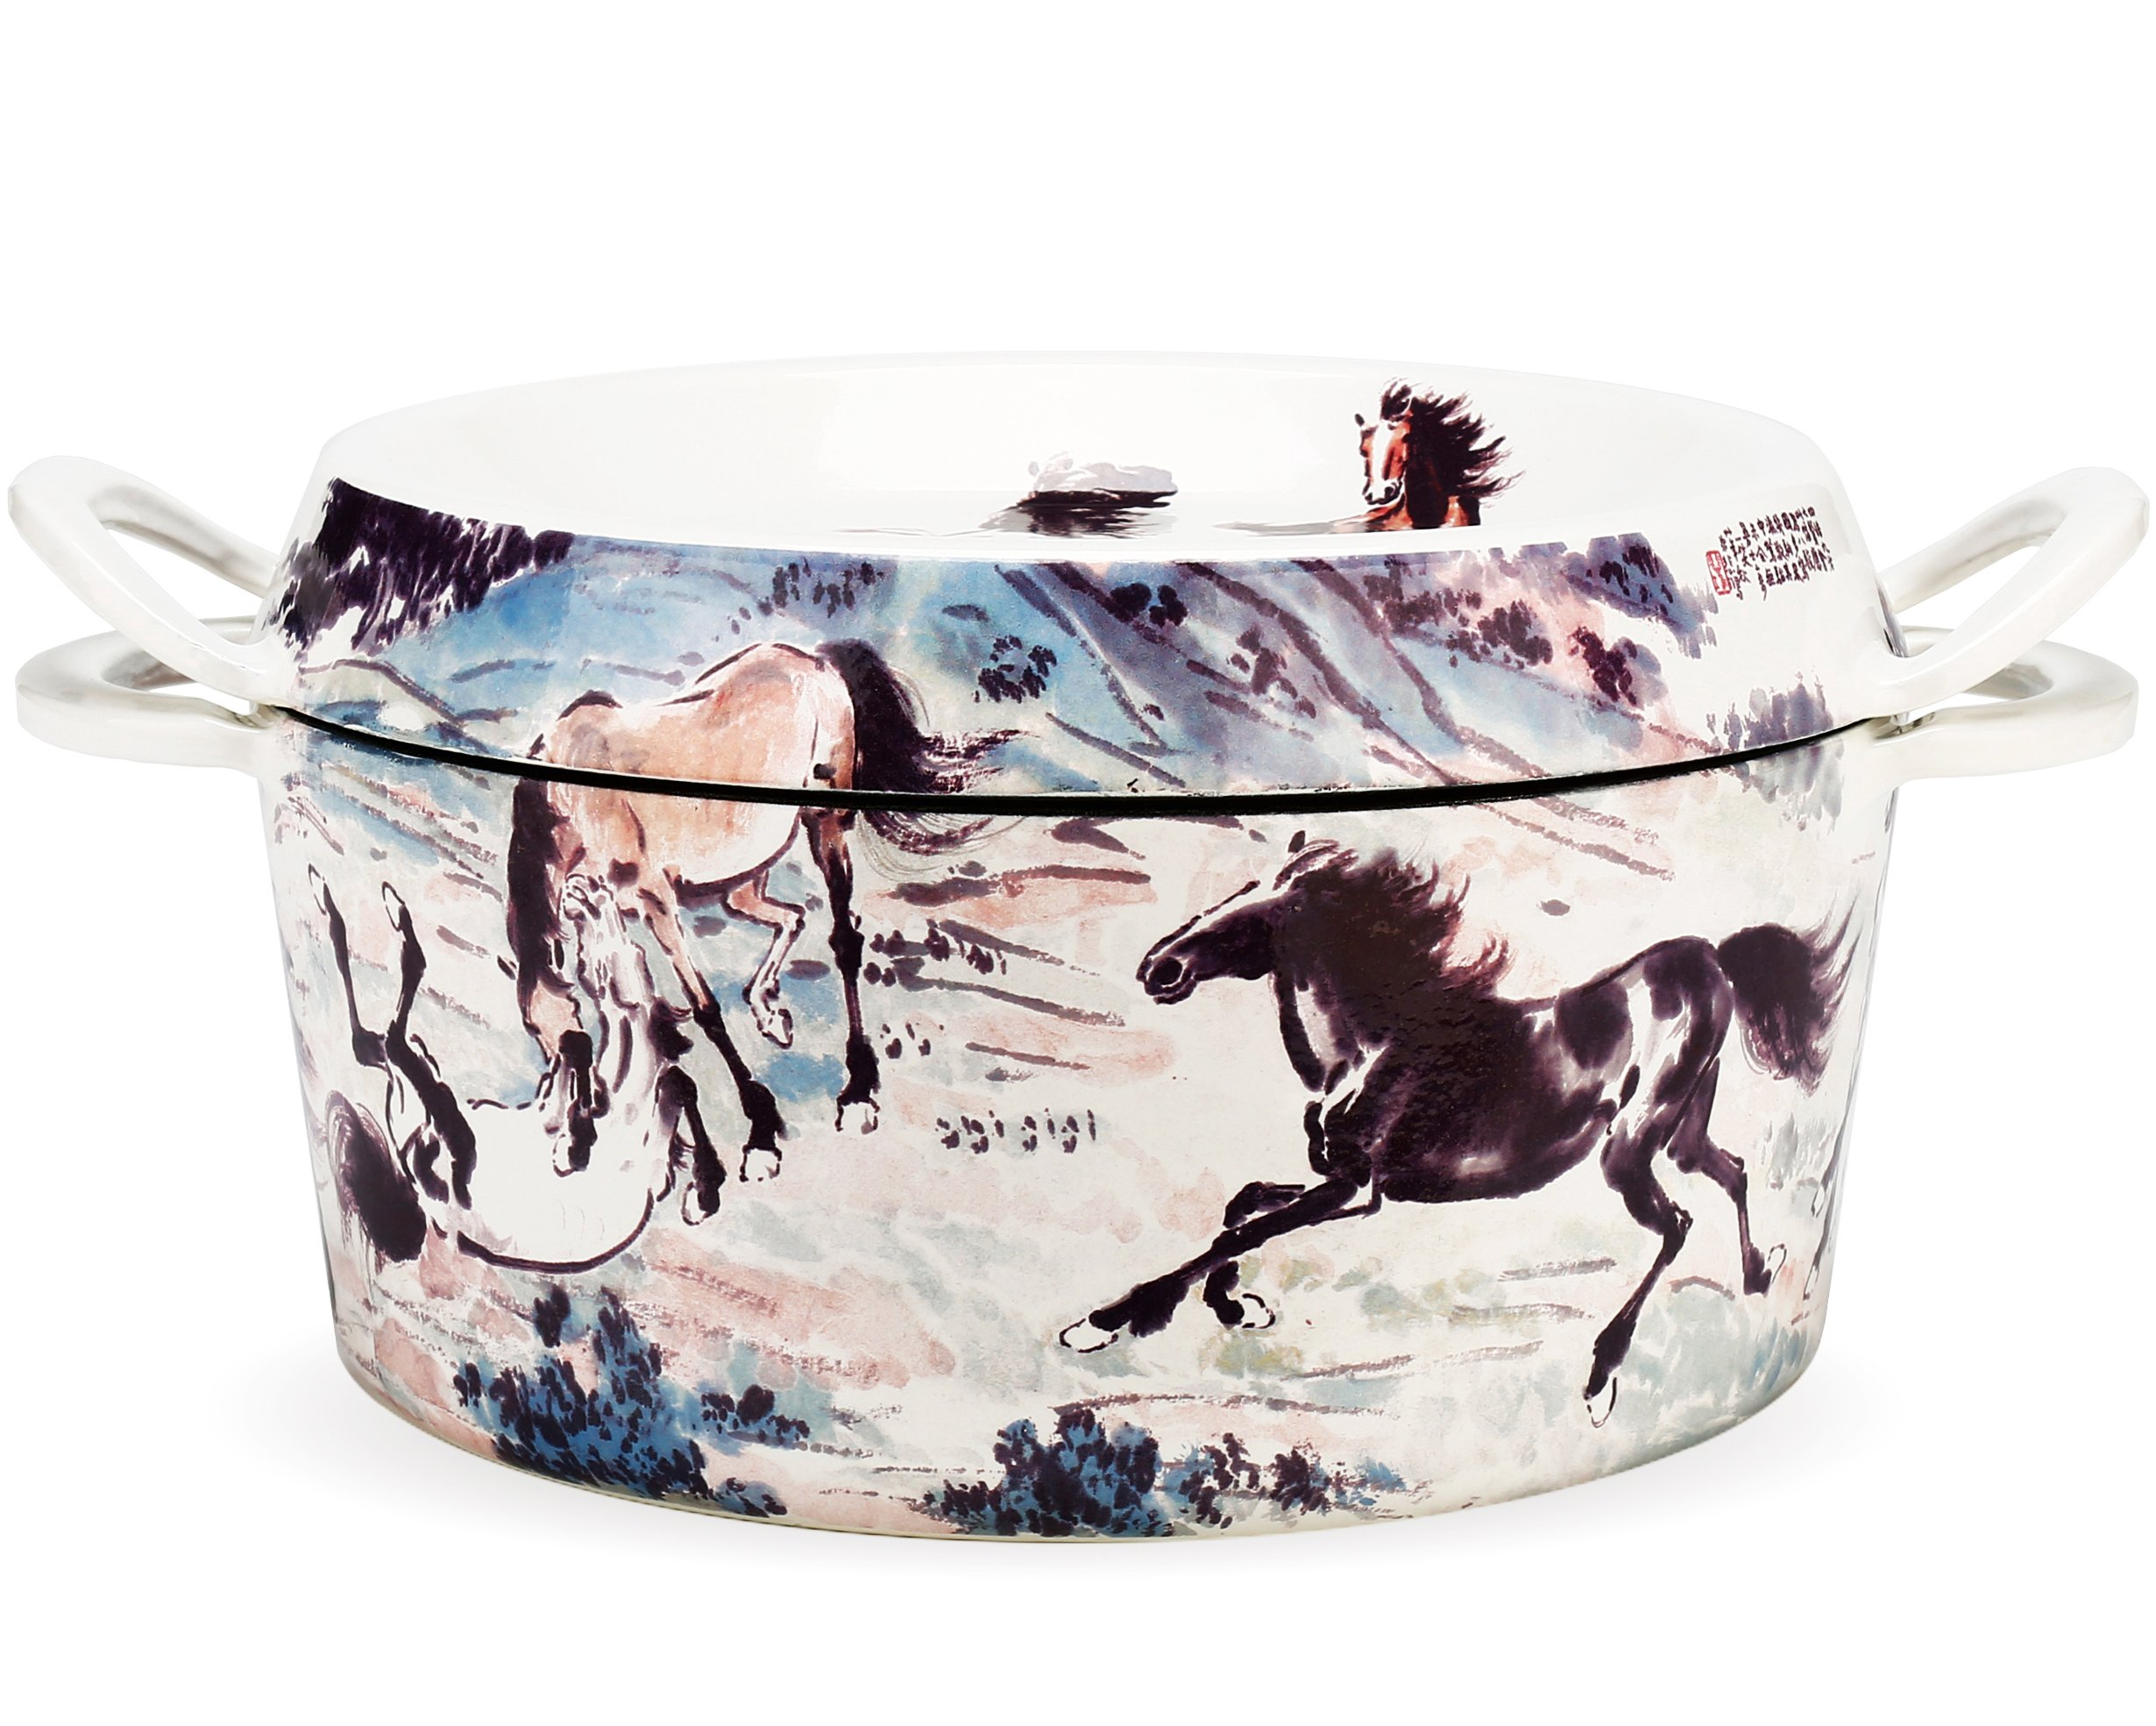 Hand Painted Enameled Cast Iron Dutch Oven,4.5-Quart,Chinoiserie,Collector's Edition,Xu Beihong,Ten horses